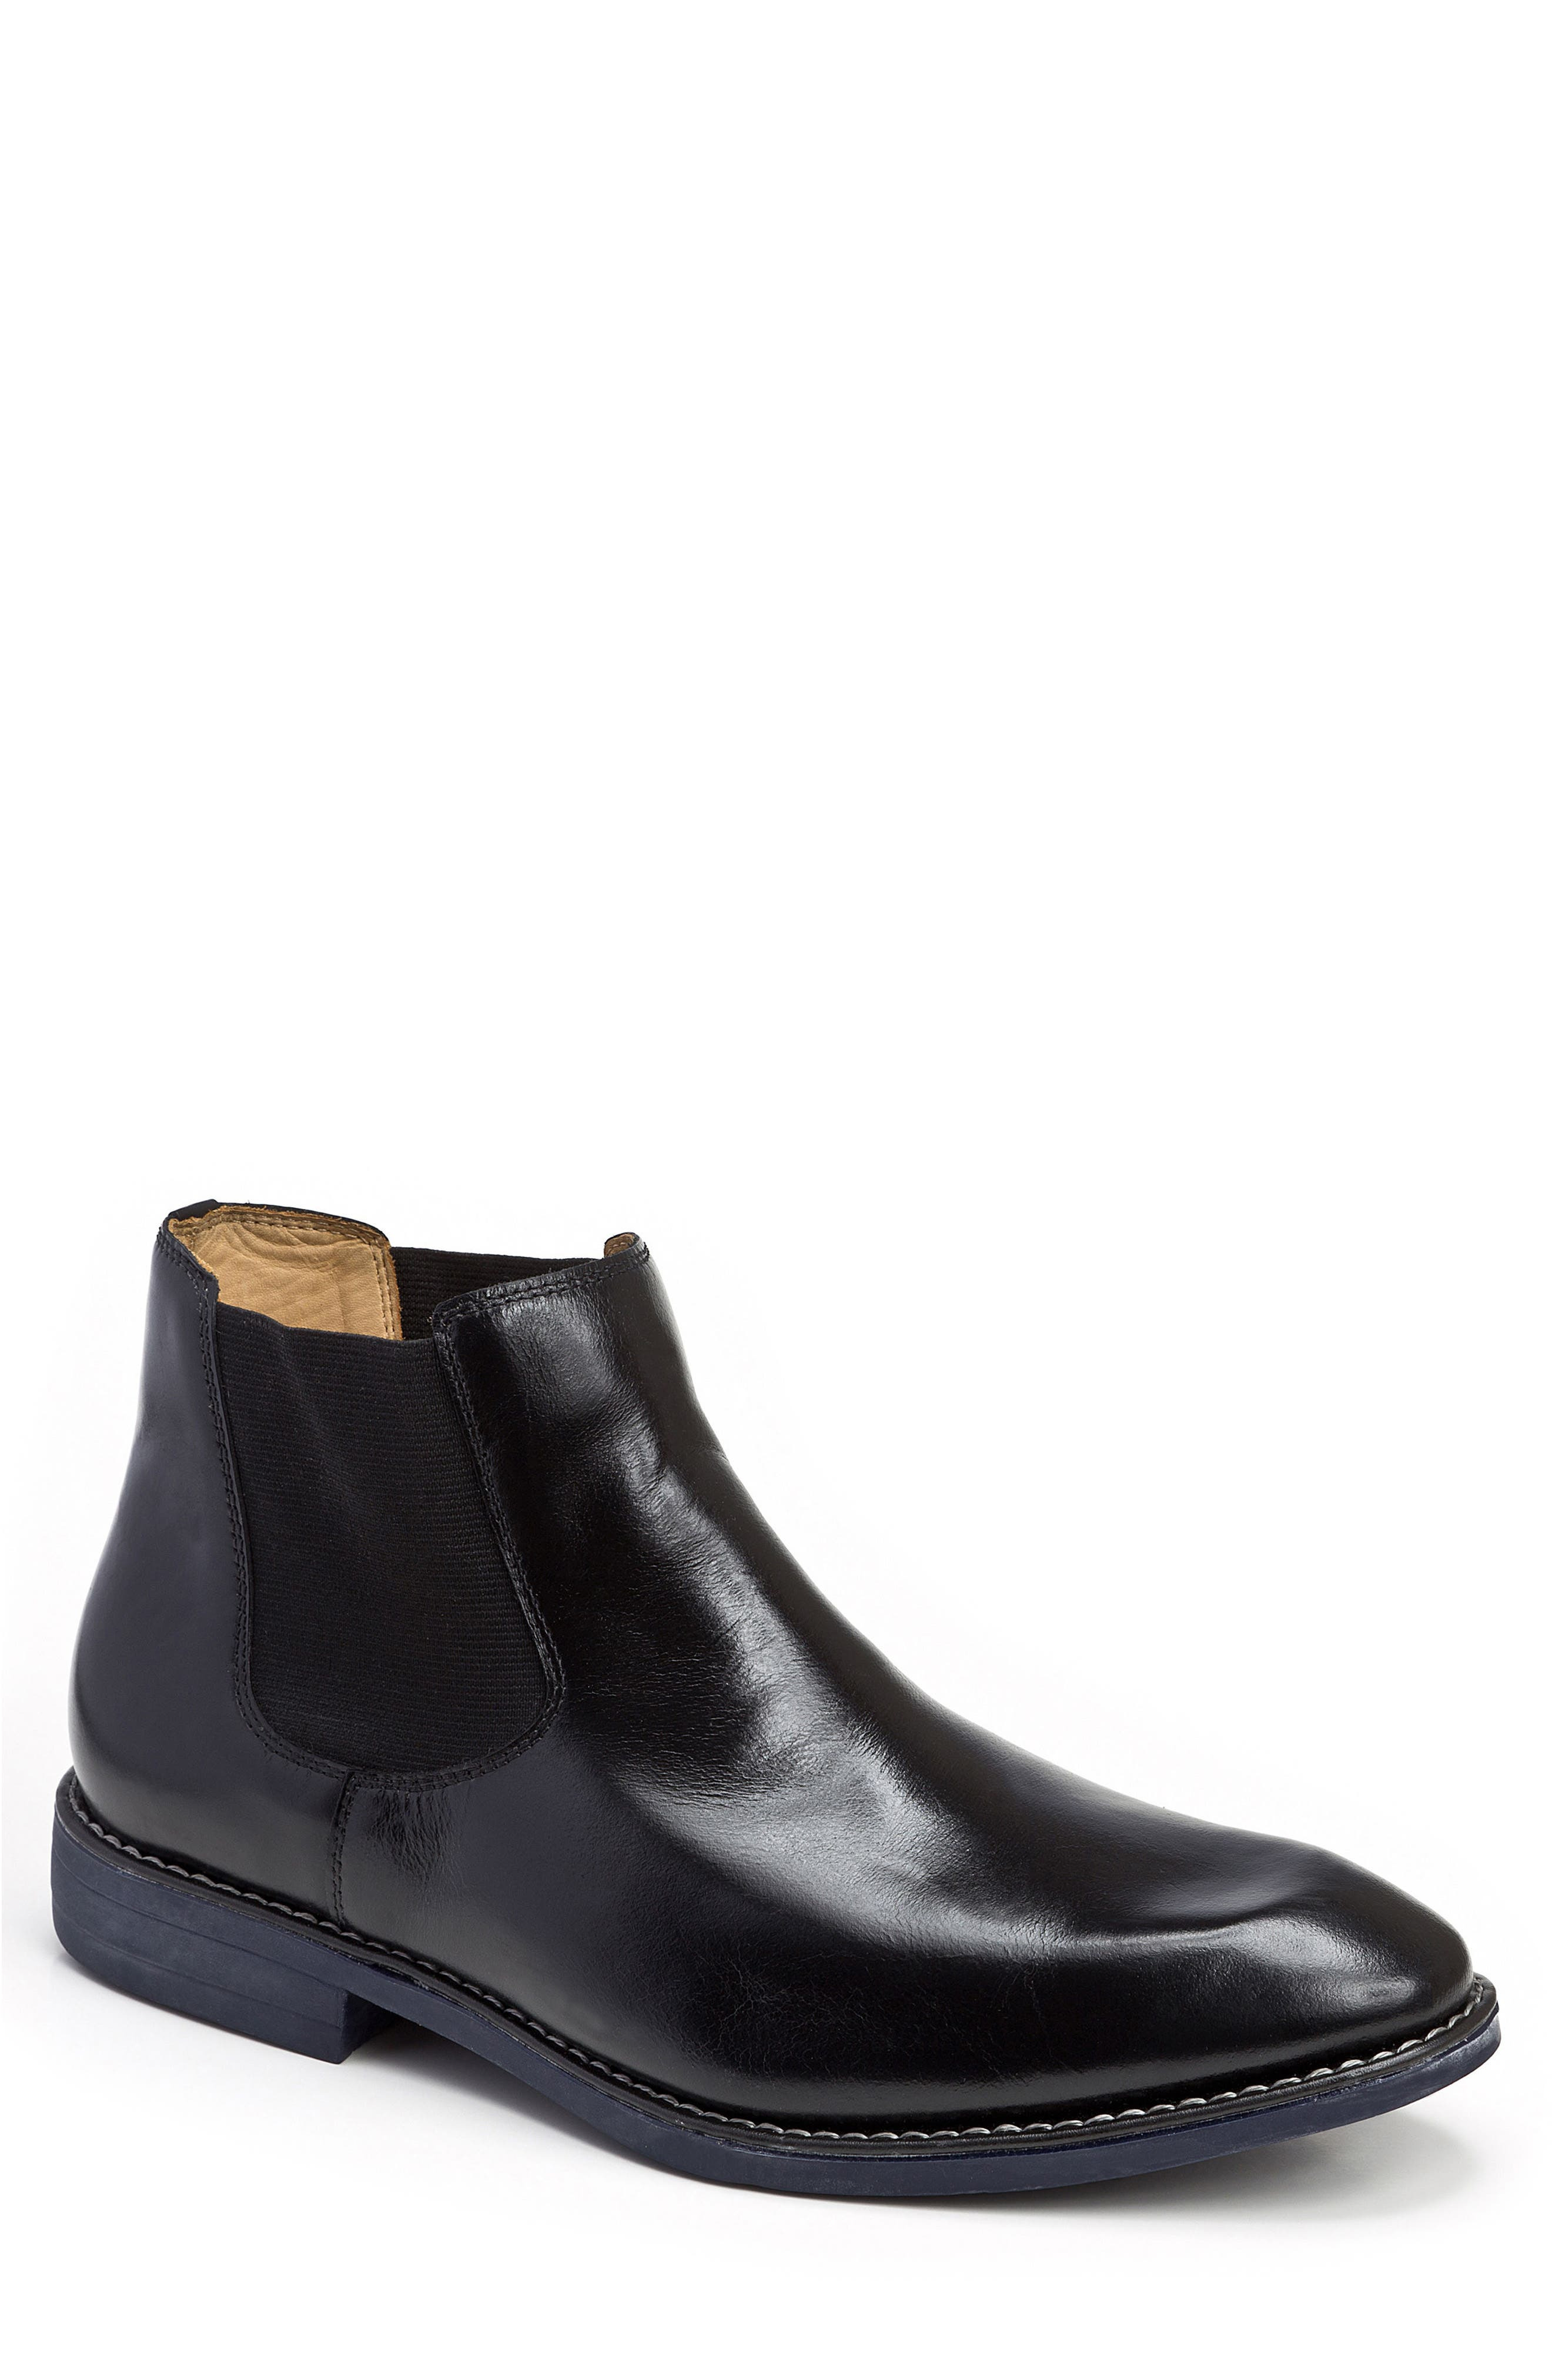 Marcus Chelsea Boot,                             Main thumbnail 1, color,                             BLACK LEATHER